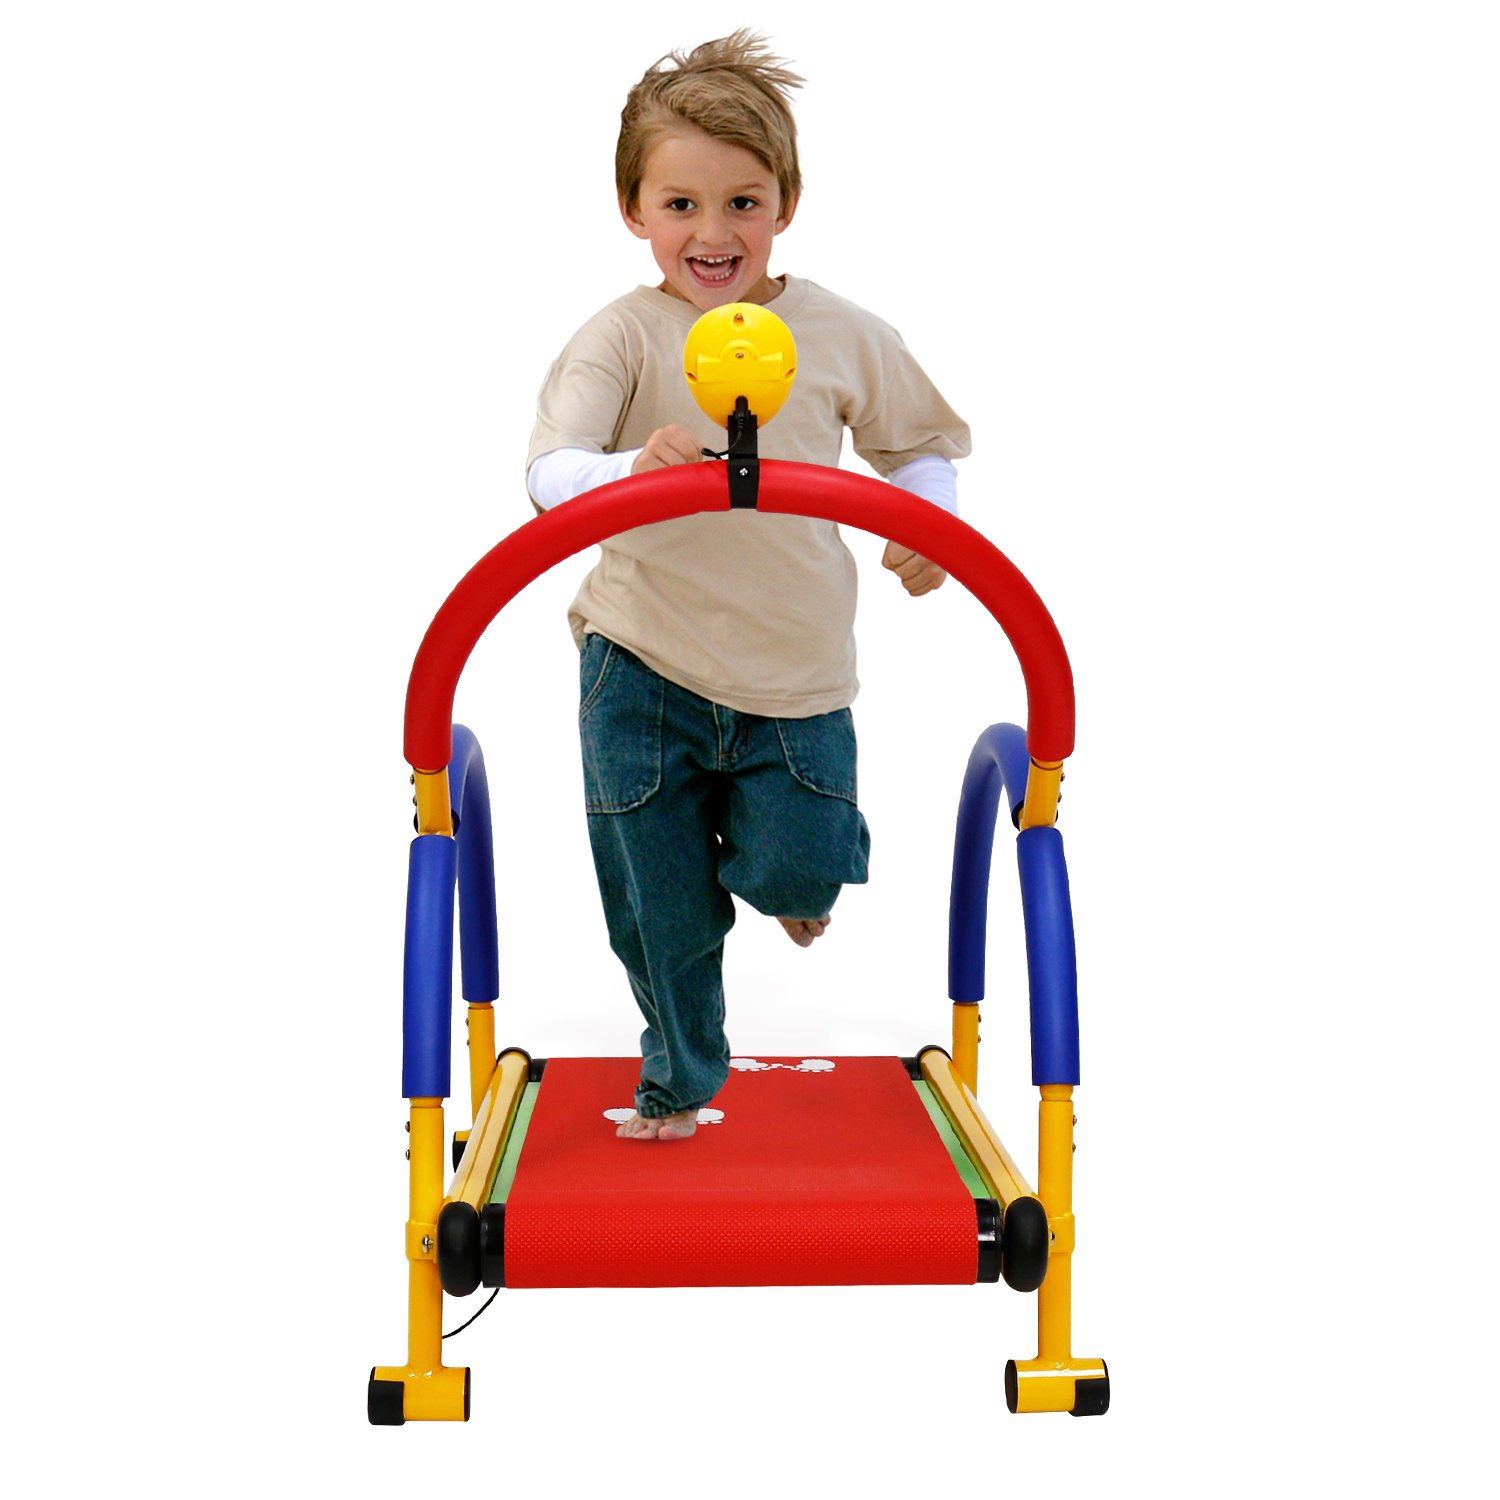 Peach Tree Fun and Fitness Exercise Equipment for Kids Children and Twister Effectively Exercise Their Bodies ( Treadmill )